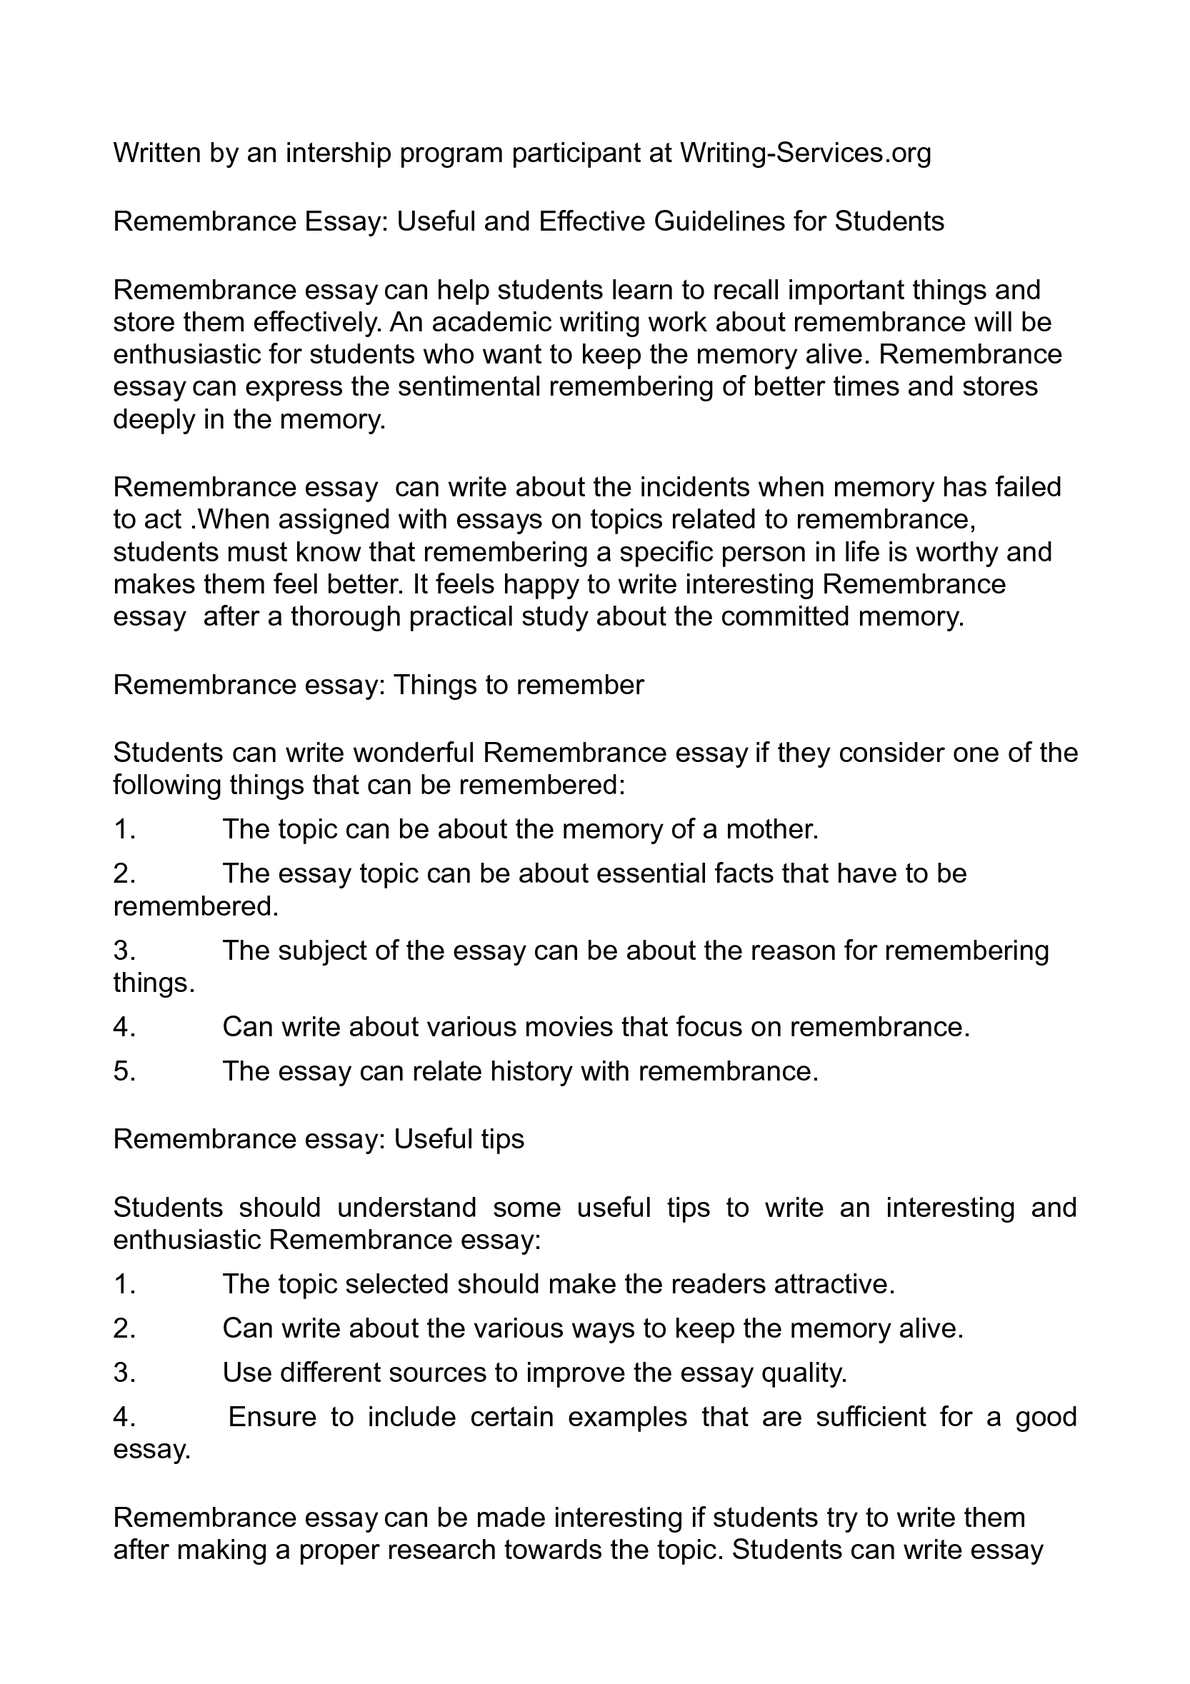 Calamo  Remembrance Essay Useful And Effective Guidelines For  Calamo  Remembrance Essay Useful And Effective Guidelines For Students Business Plan Essay also Online Proofreader  My Hobby English Essay